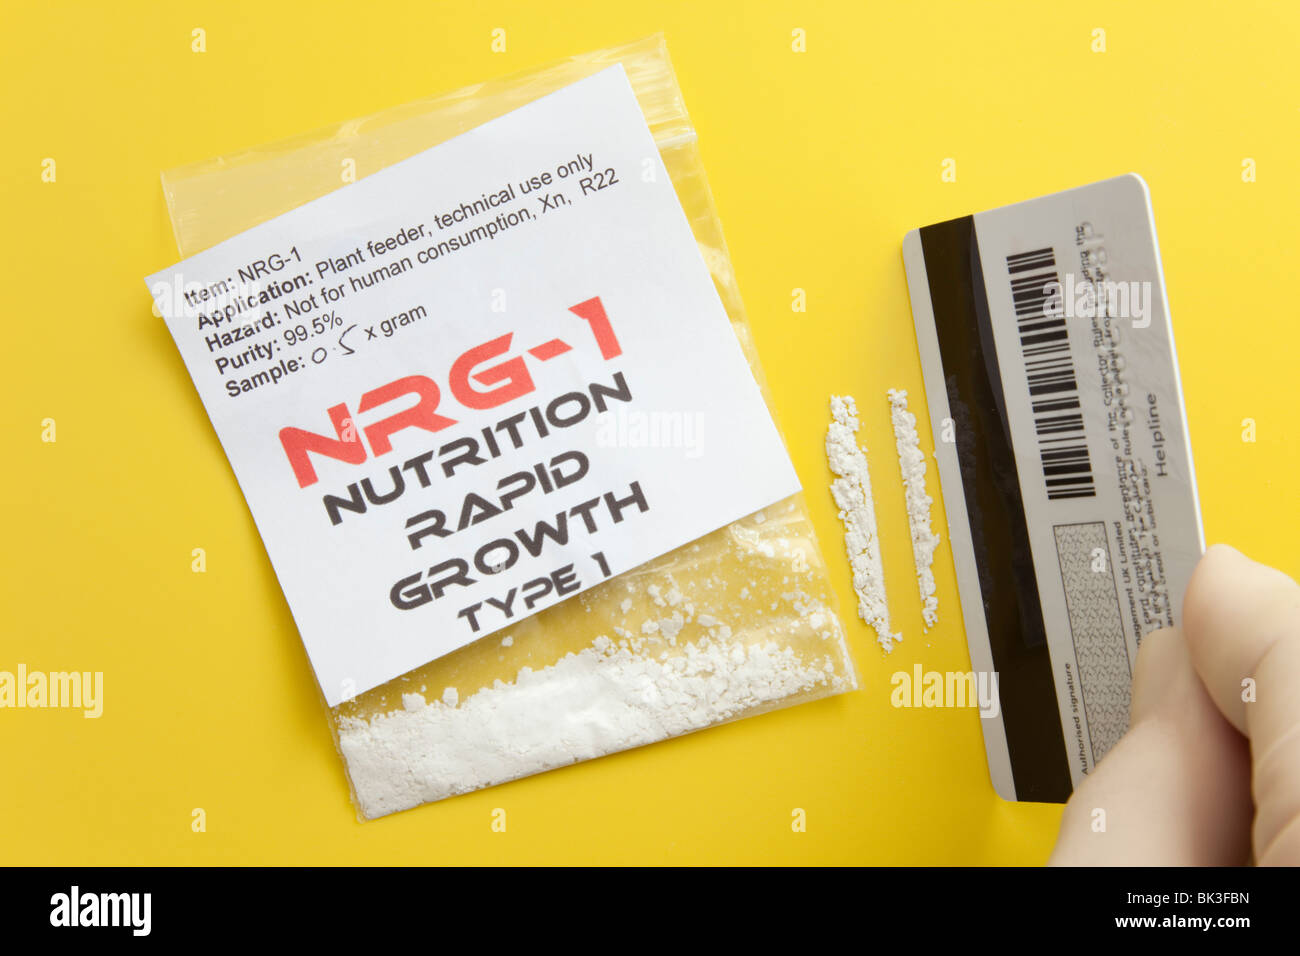 Britain, UK, Europe. Person making drug lines by a packet of NRG-1 plant food, popular as a legal high in UK. - Stock Image